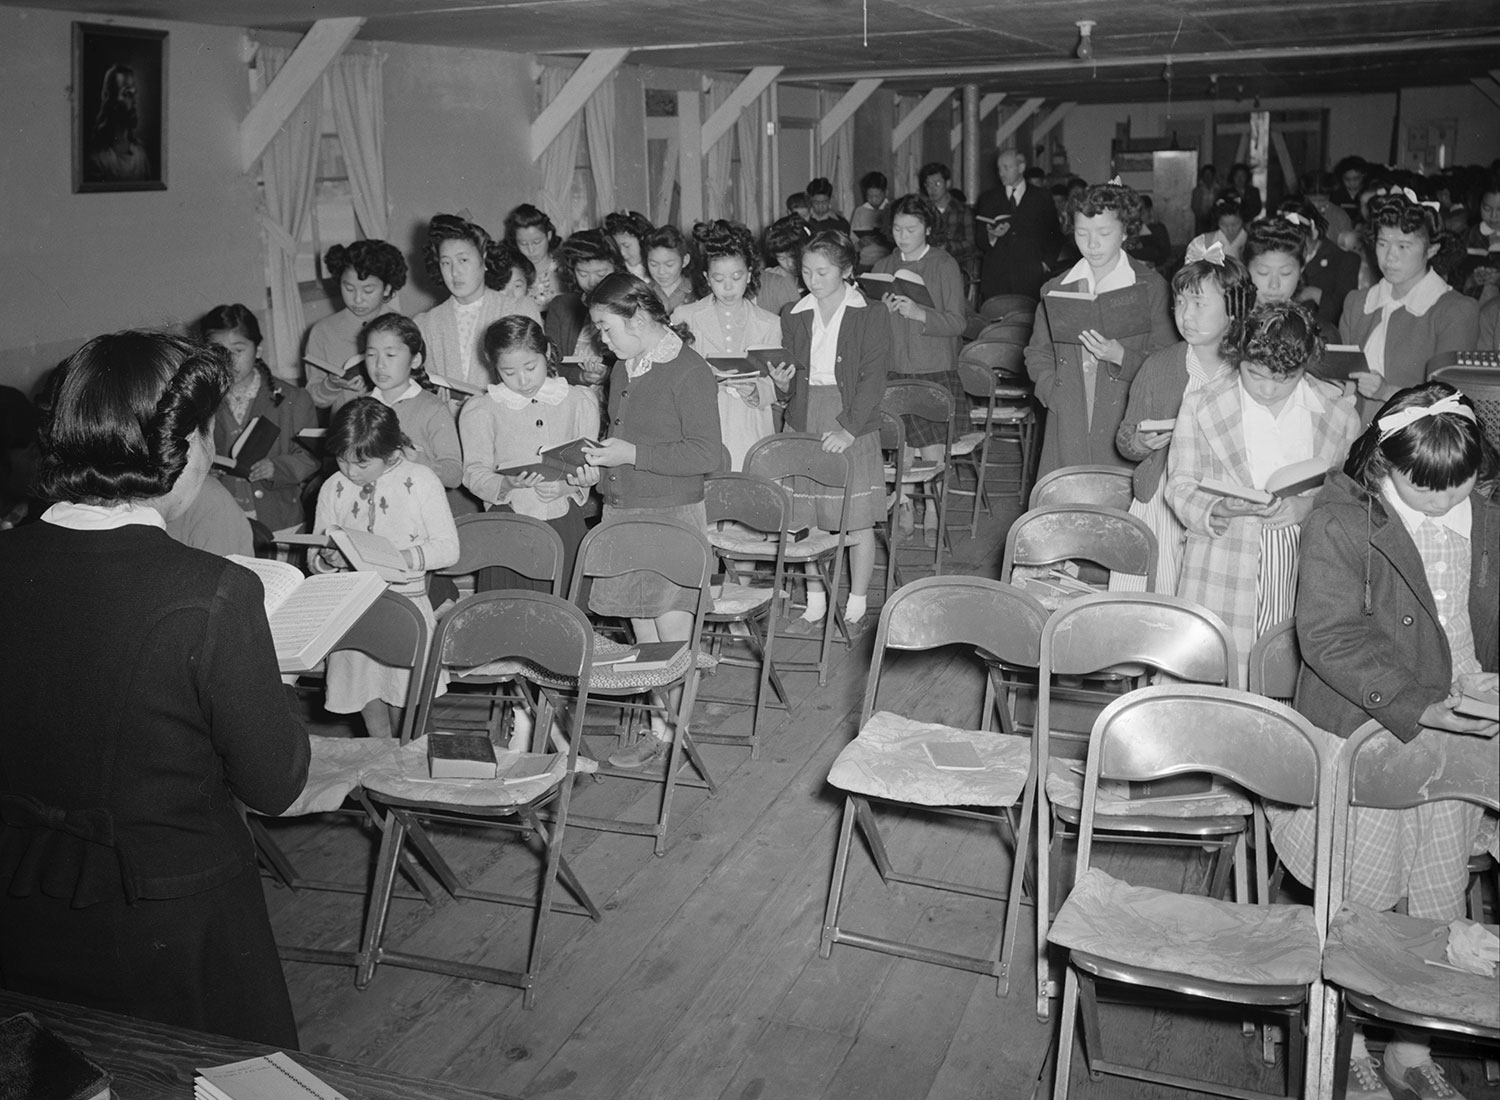 Sunday school, Manzanar War Relocation Center, 1943, Ansel Adams.